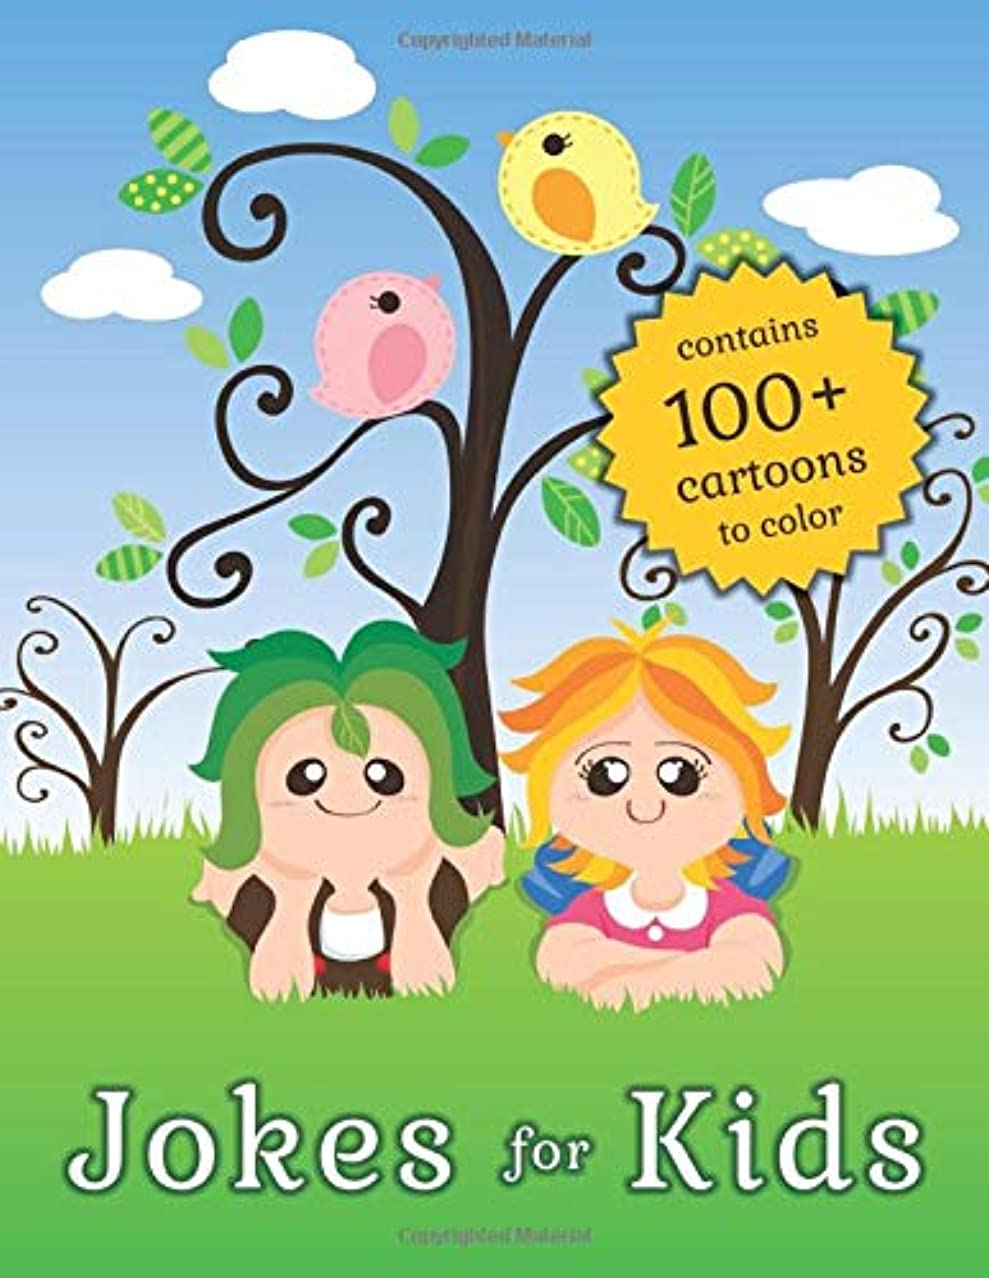 Jokes For Kids - Contains 100+ Cartoons To Color: Contains 300+ jokes and riddles to tickle the funny bone of kids, along with 100+ cute colorable cartoons to satiate their creative appetites